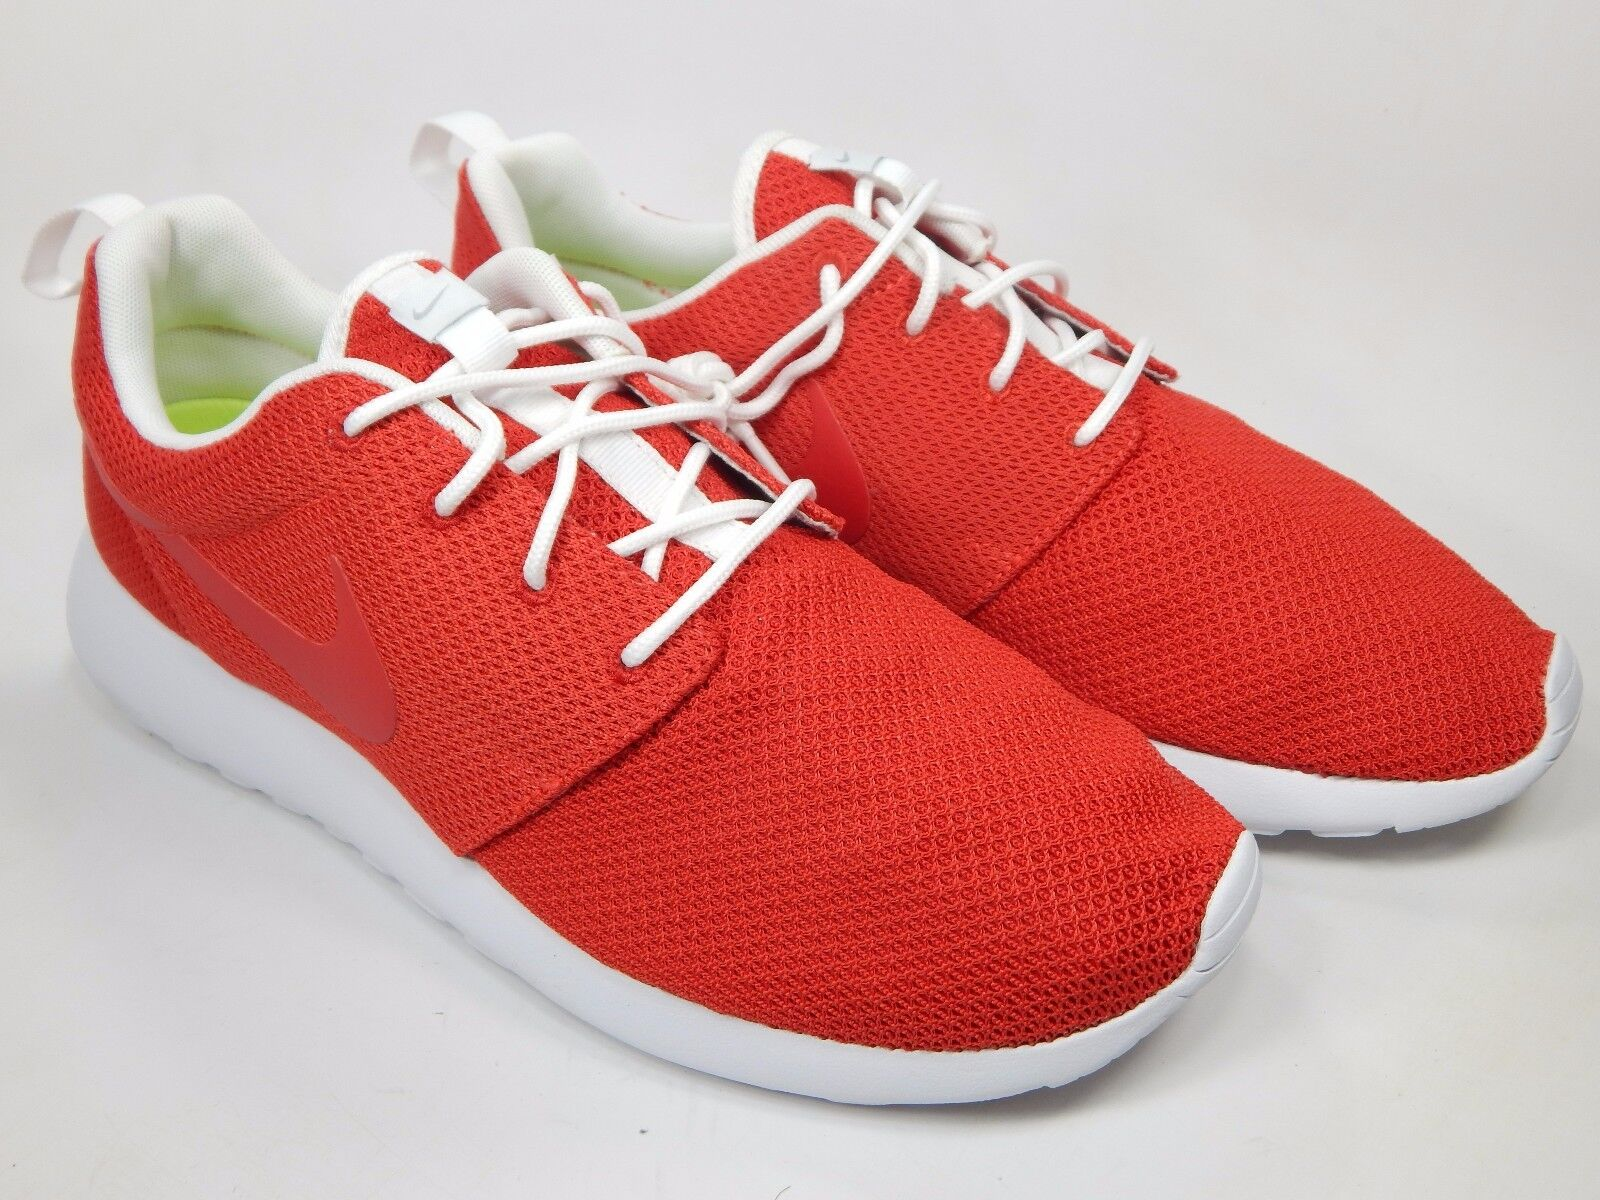 Nike Roshe Run ID One Size 11 M Men's Running shoes Bright Red 616834-993